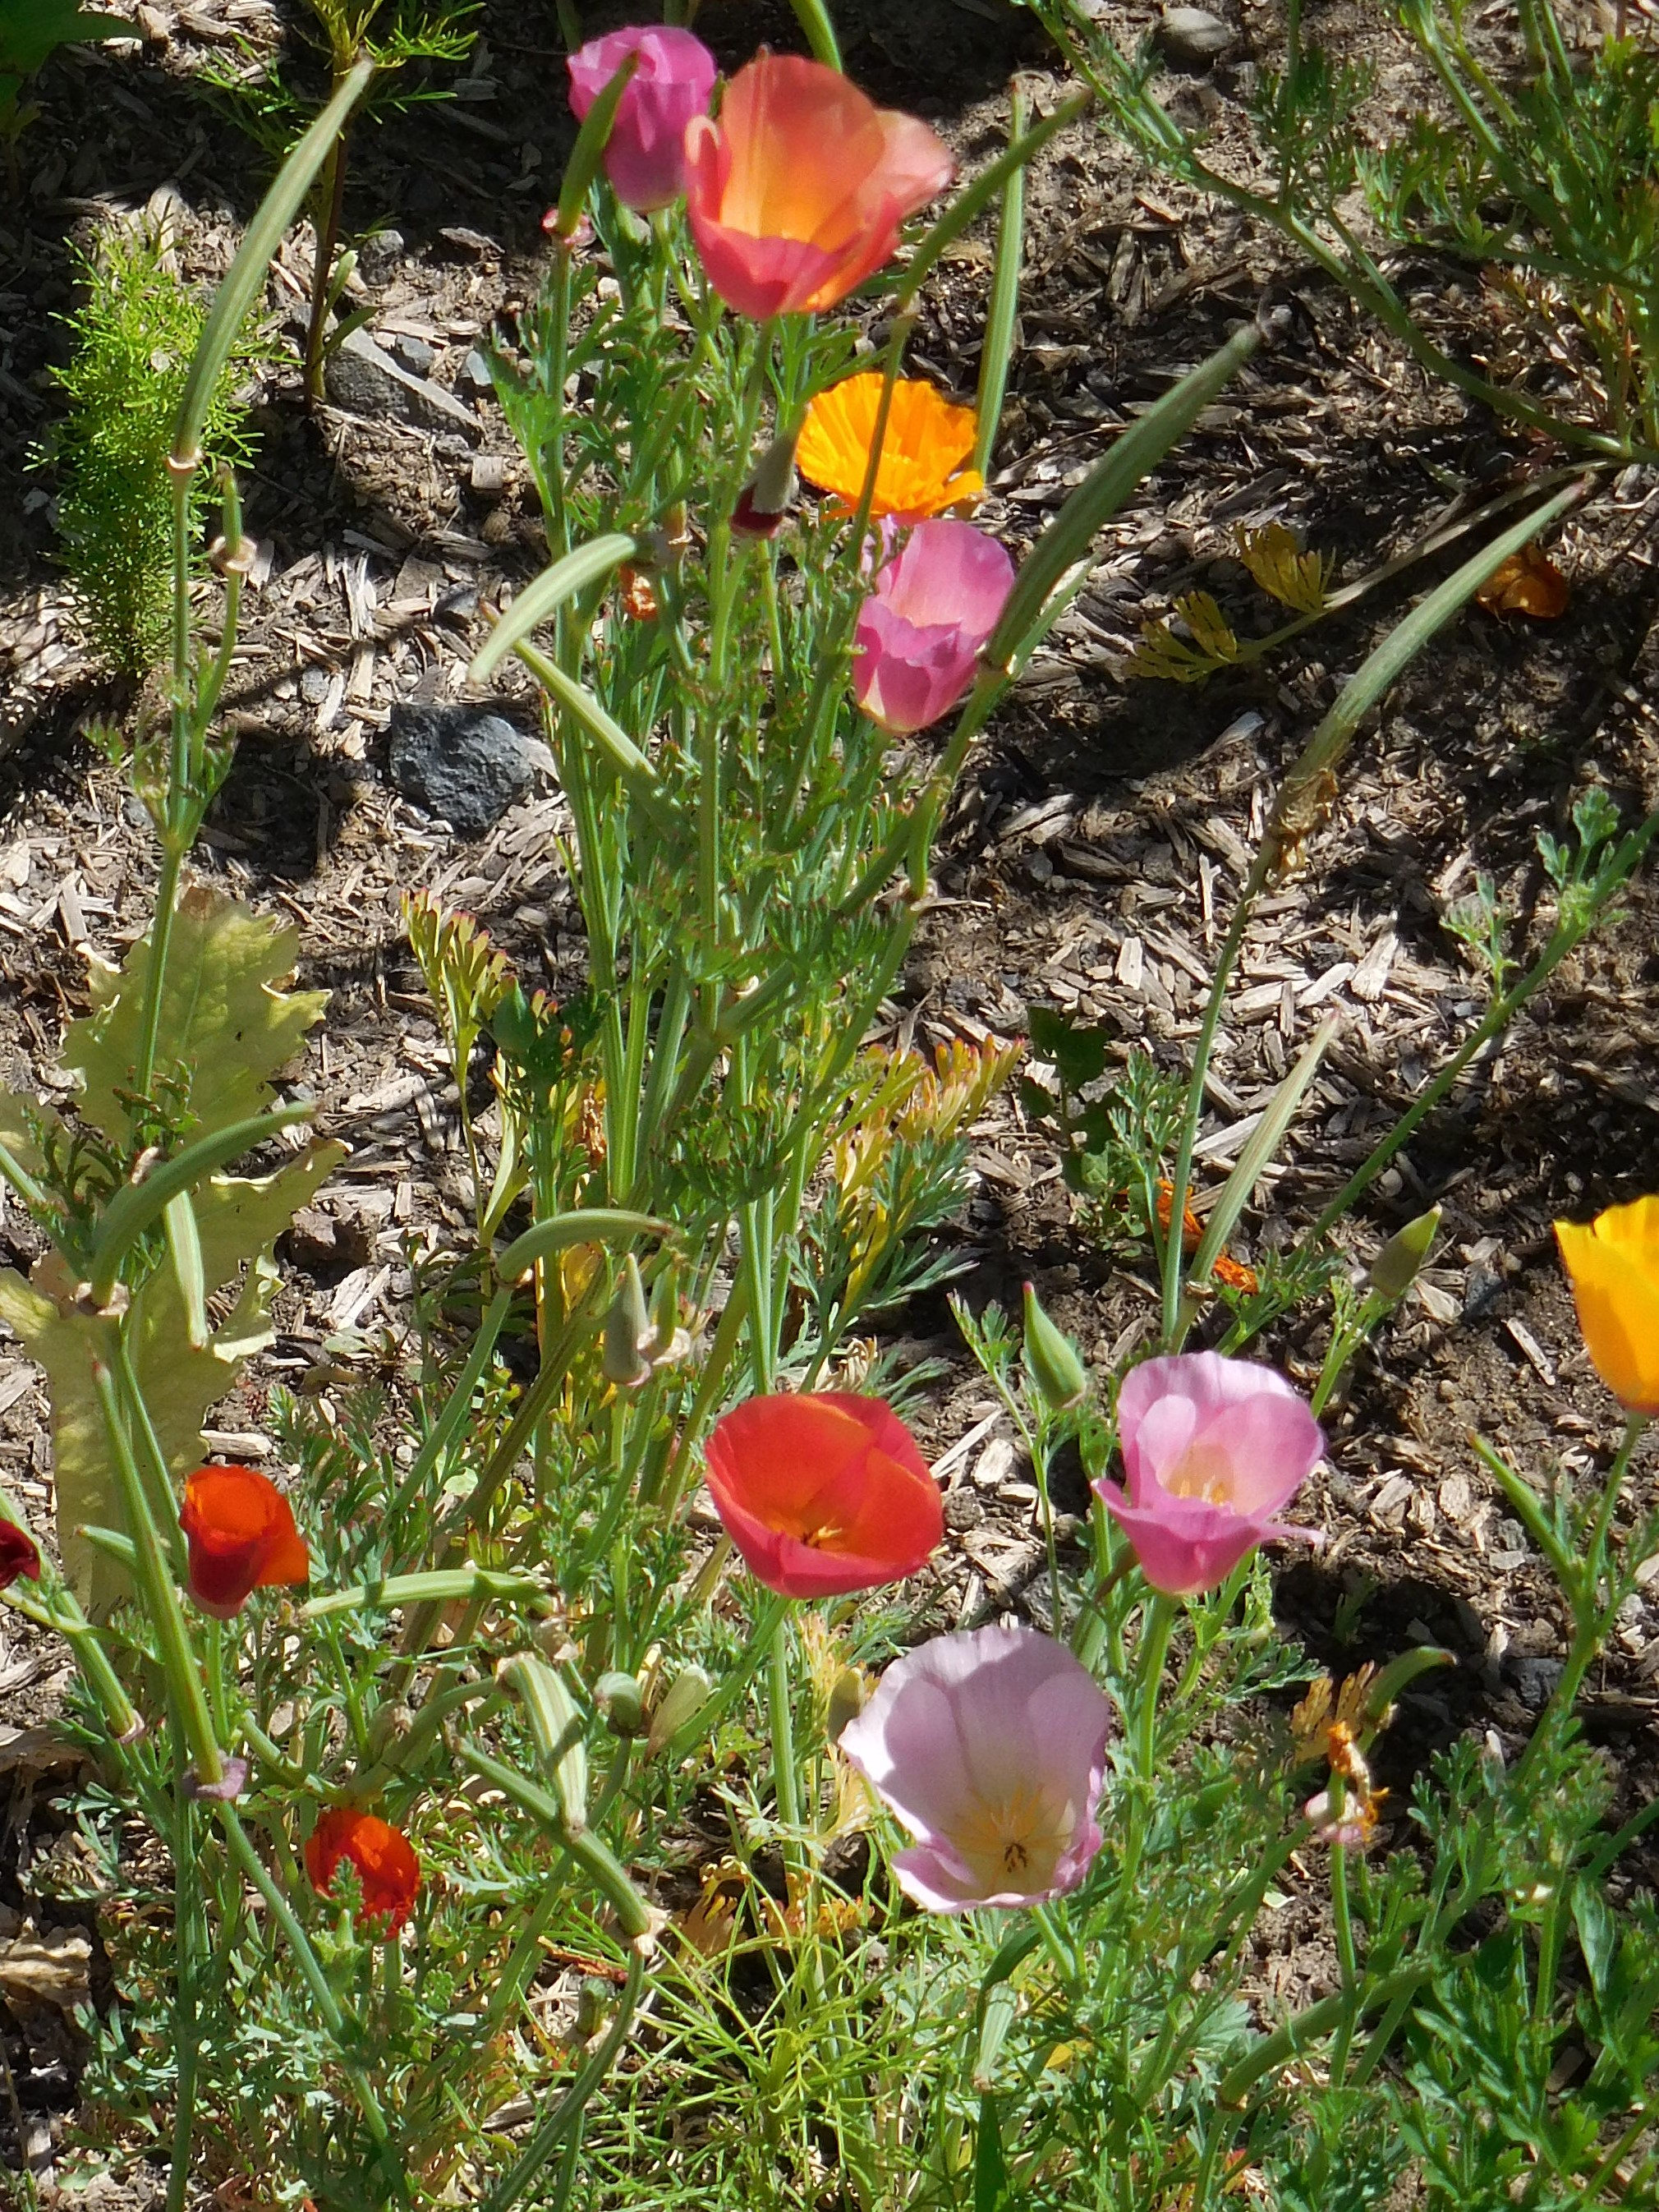 California poppies are actually their own species. I planted 2 varieties in my poppy row anyway!